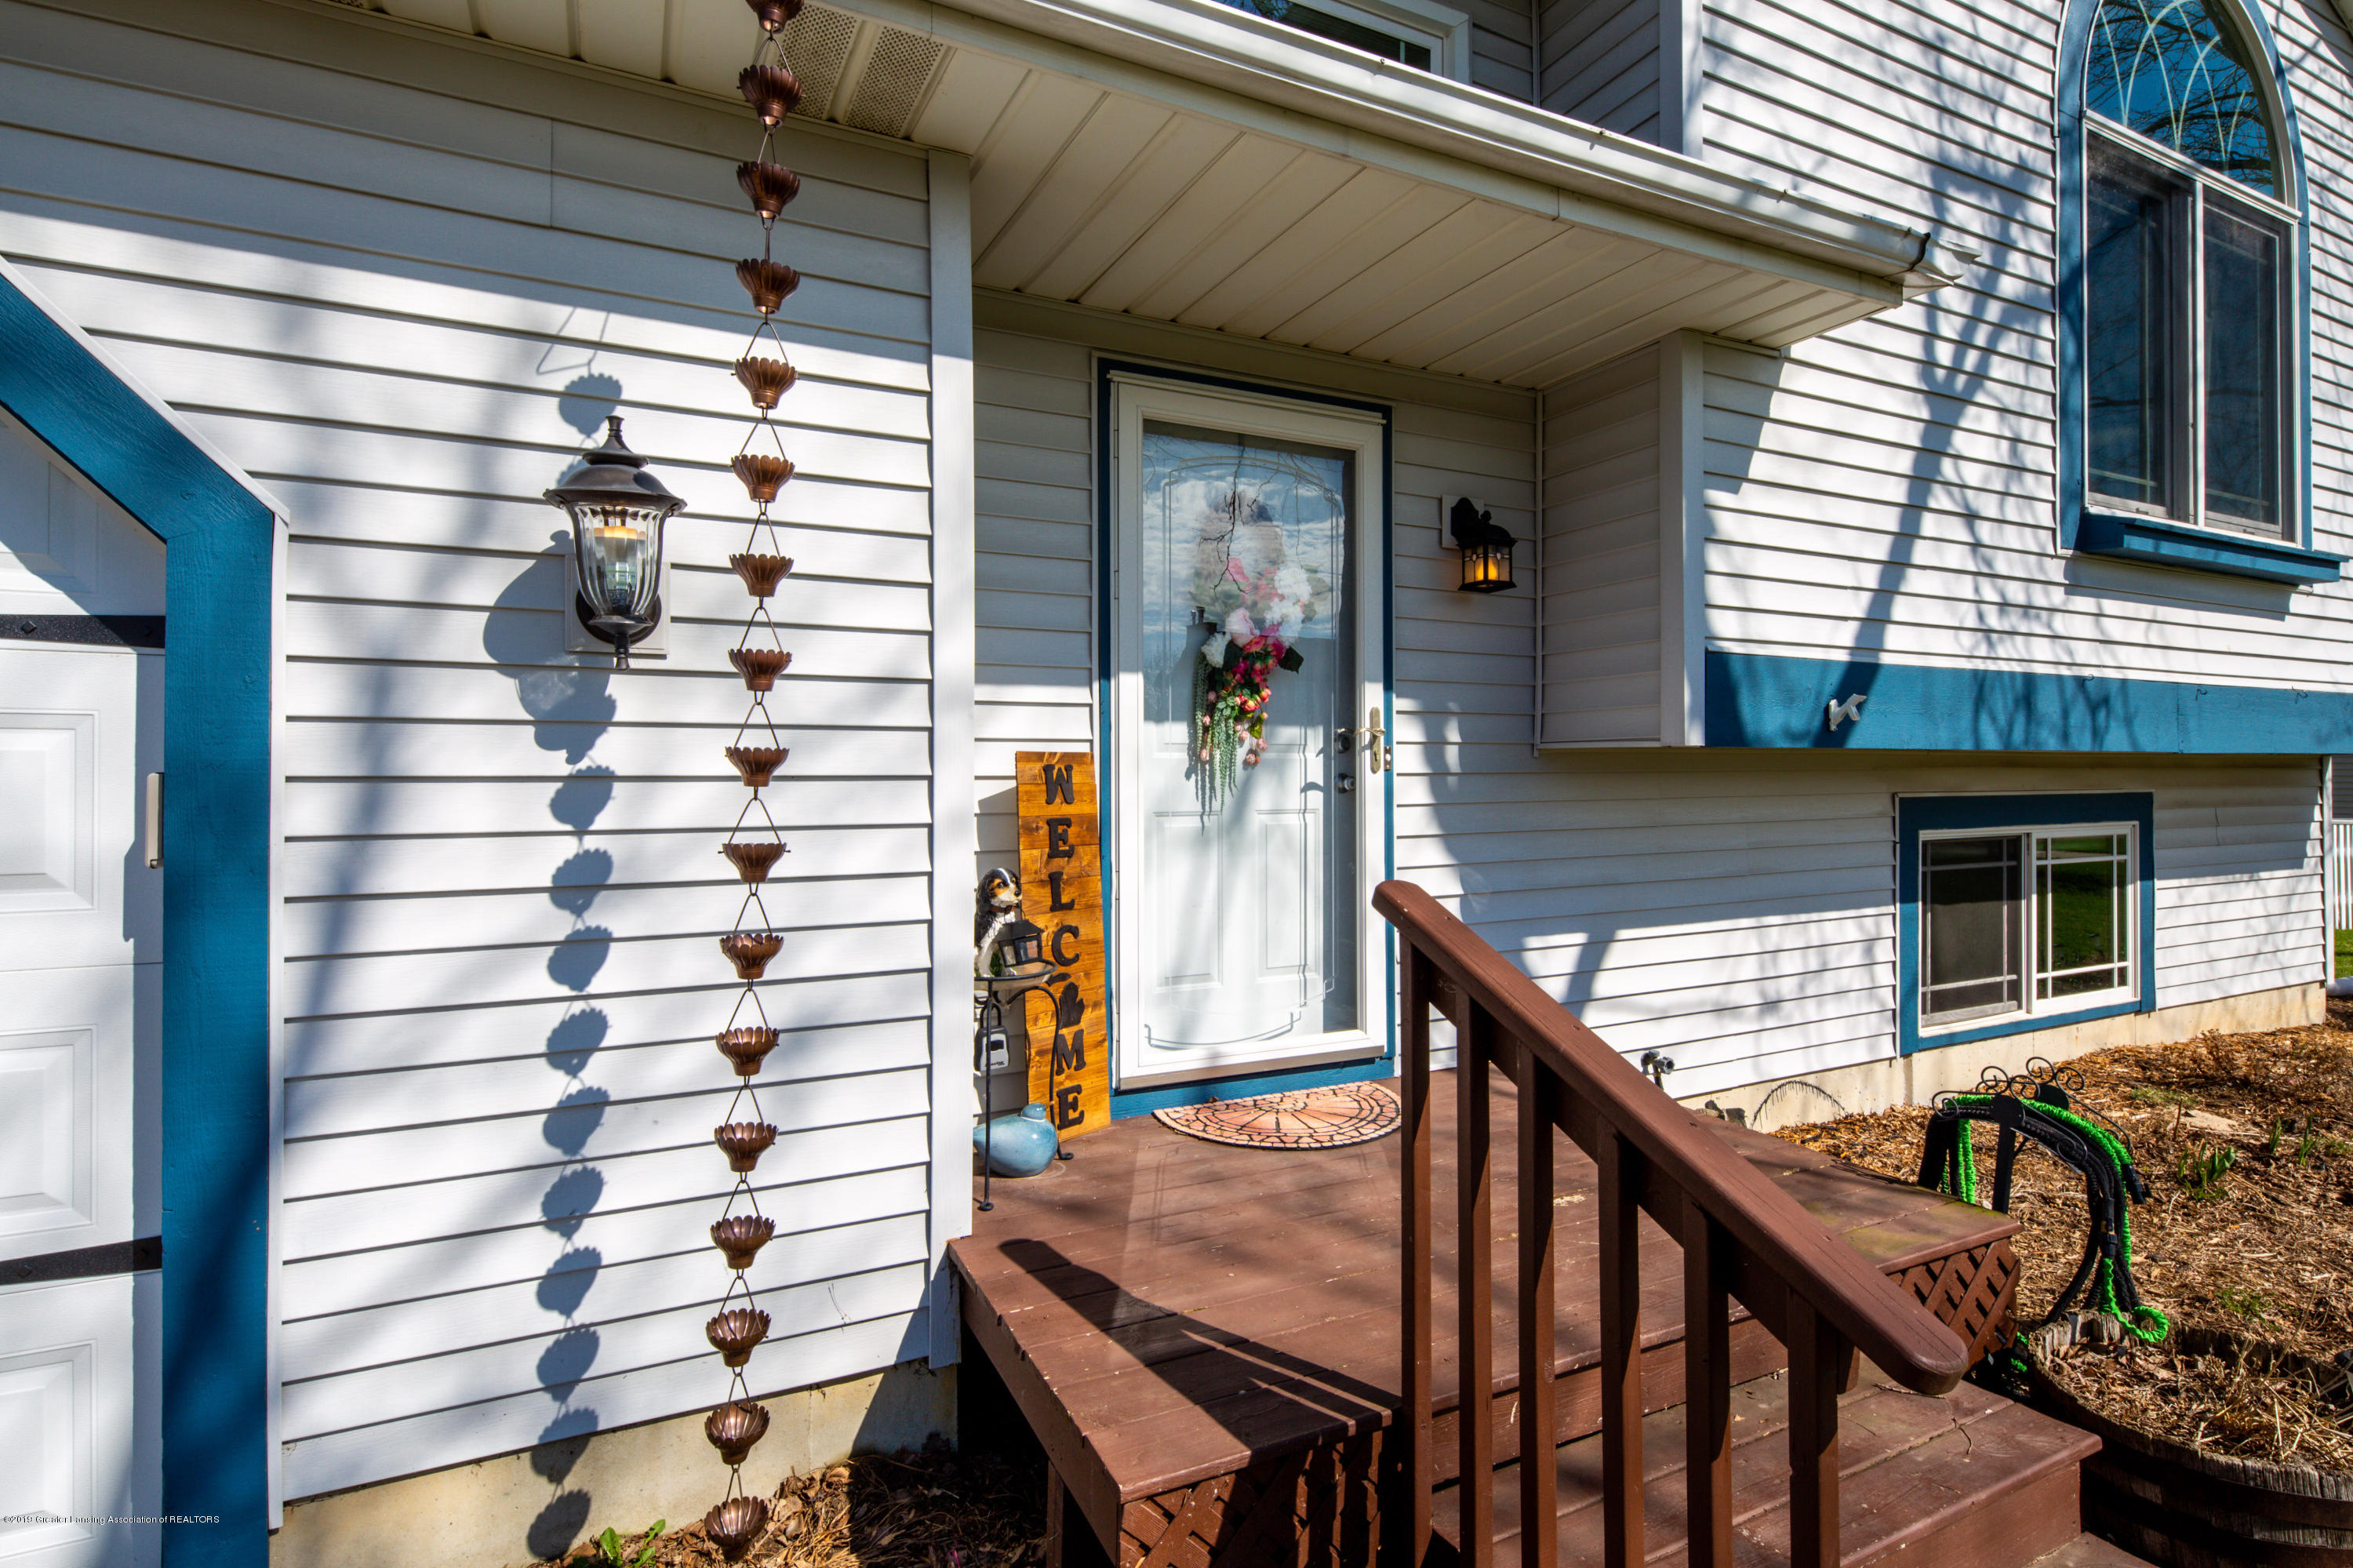 2450 Featherstone Dr - 20190421-942A2191 - 10